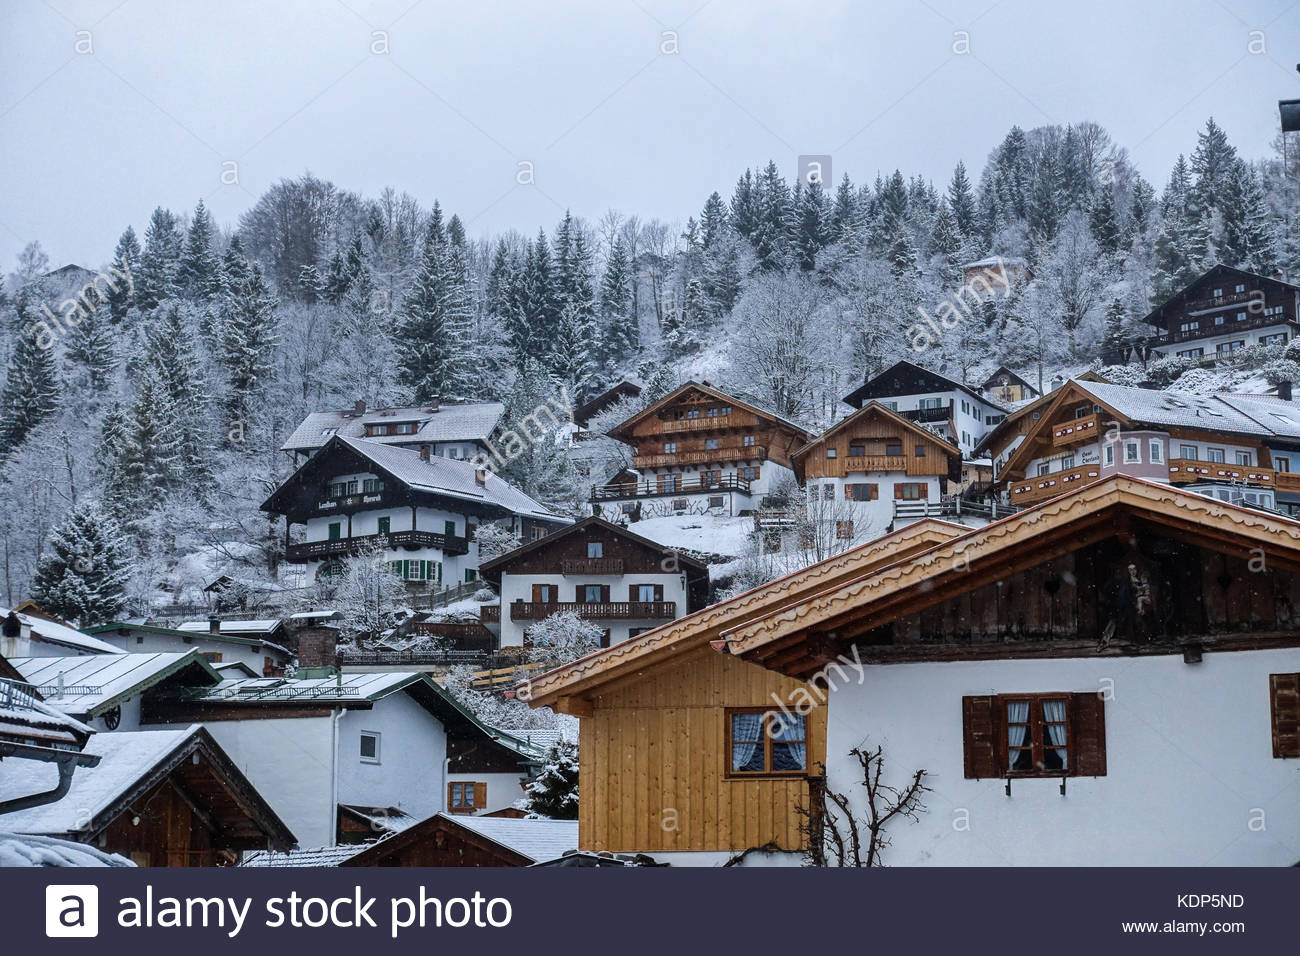 The Geigenbaumuseum The Bavarian Alps, Mittenwald Stock Photos & Mittenwald Stock Images - Alamy